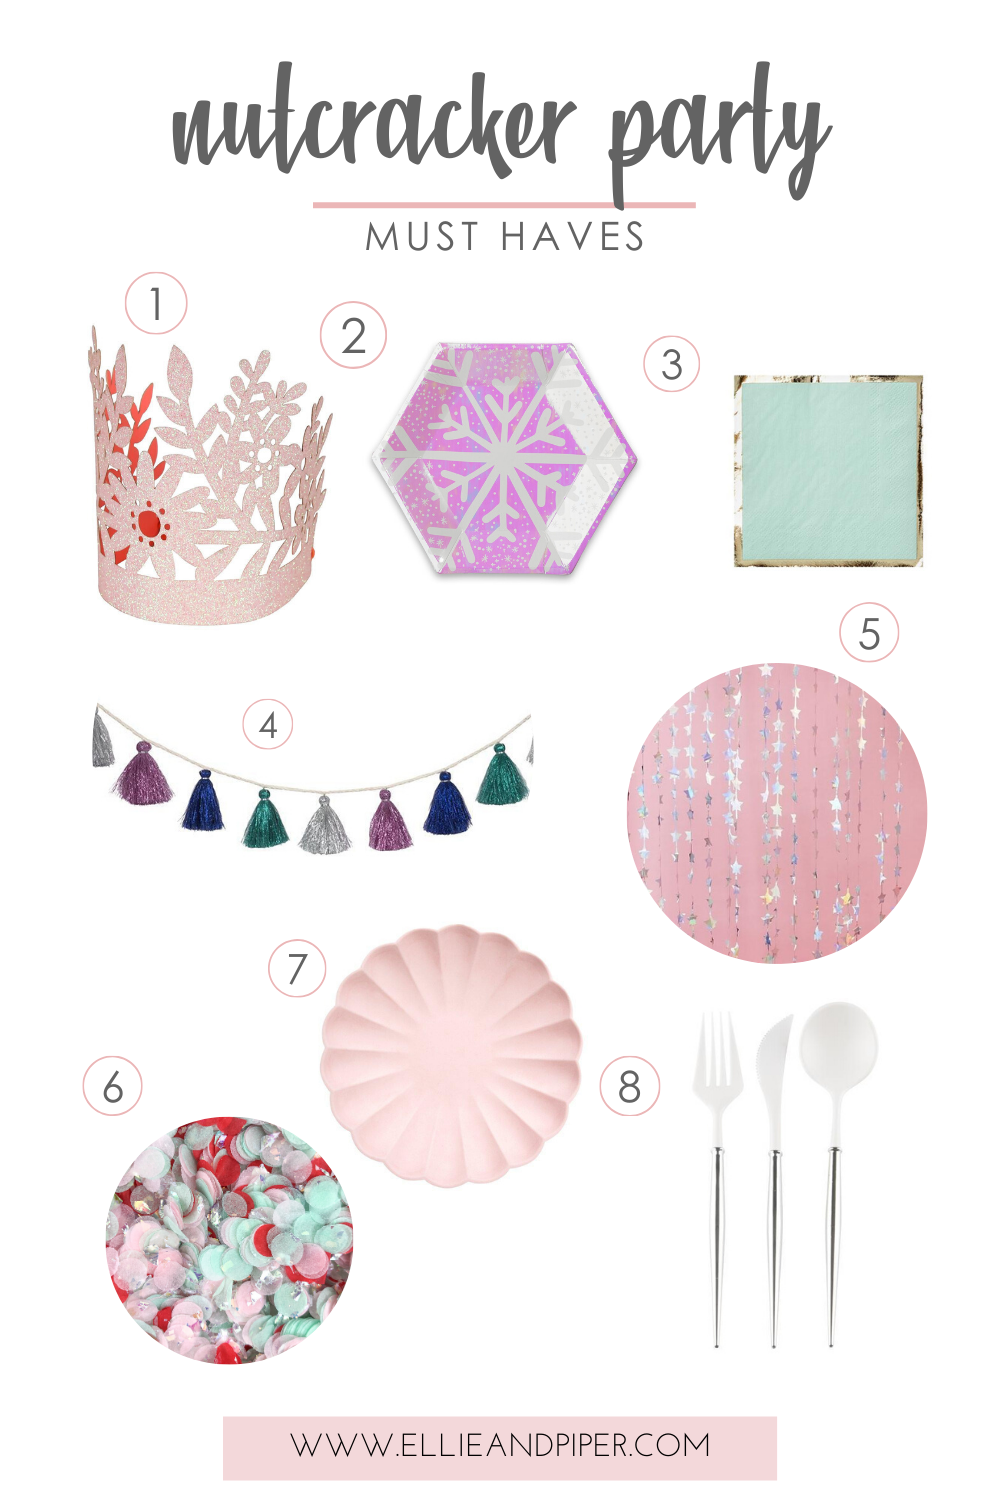 Nutcracker party must haves